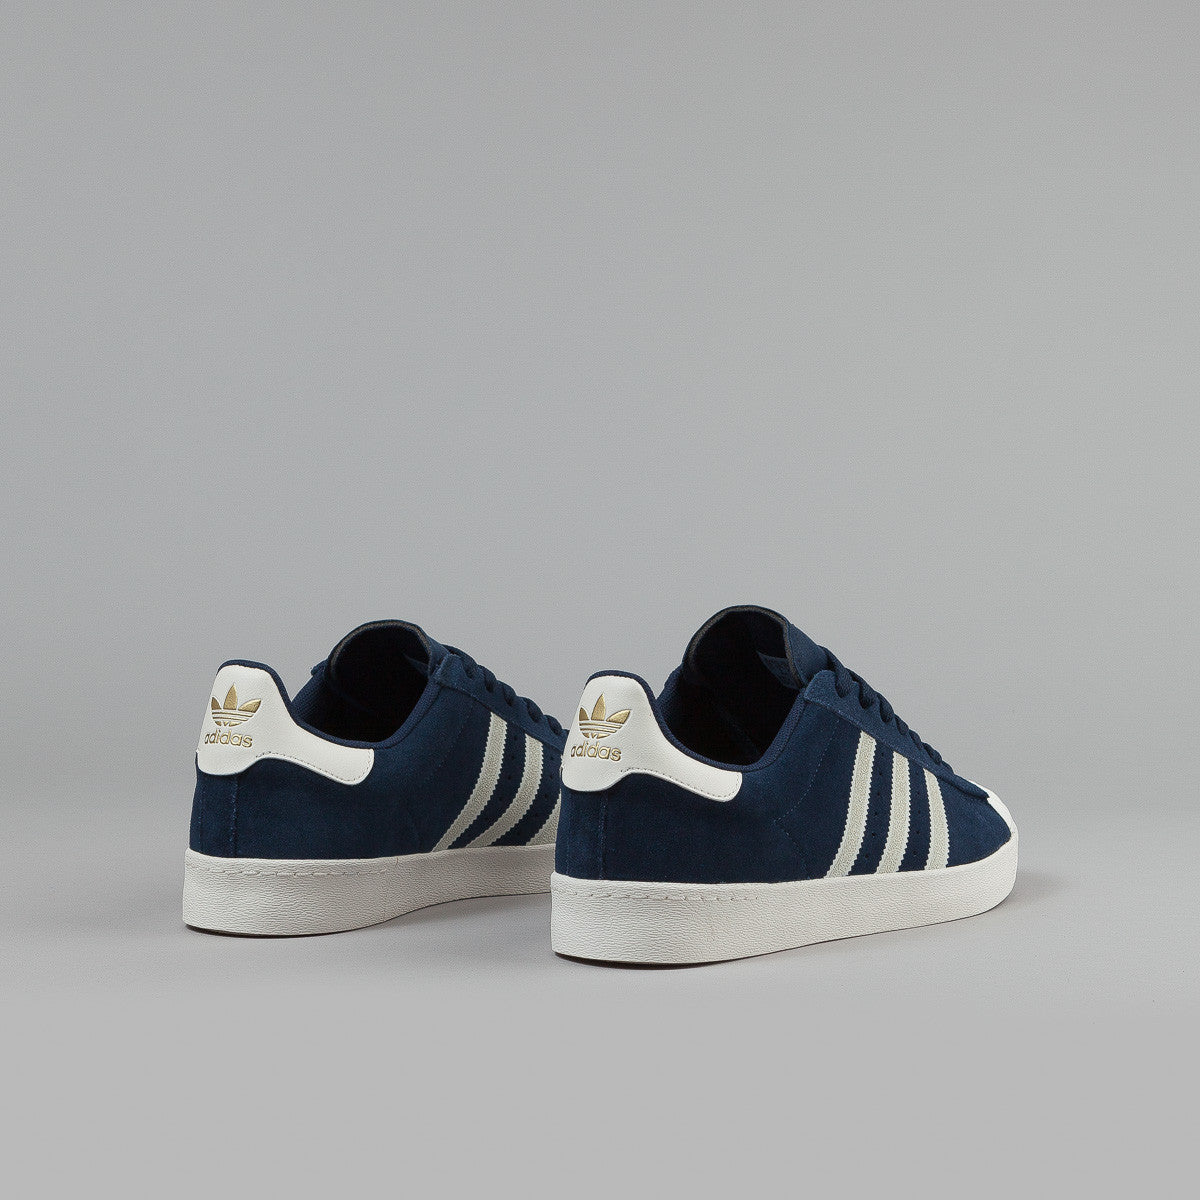 Cheap Adidas superstar adv skate If the rain won 't go away, Why not shop today